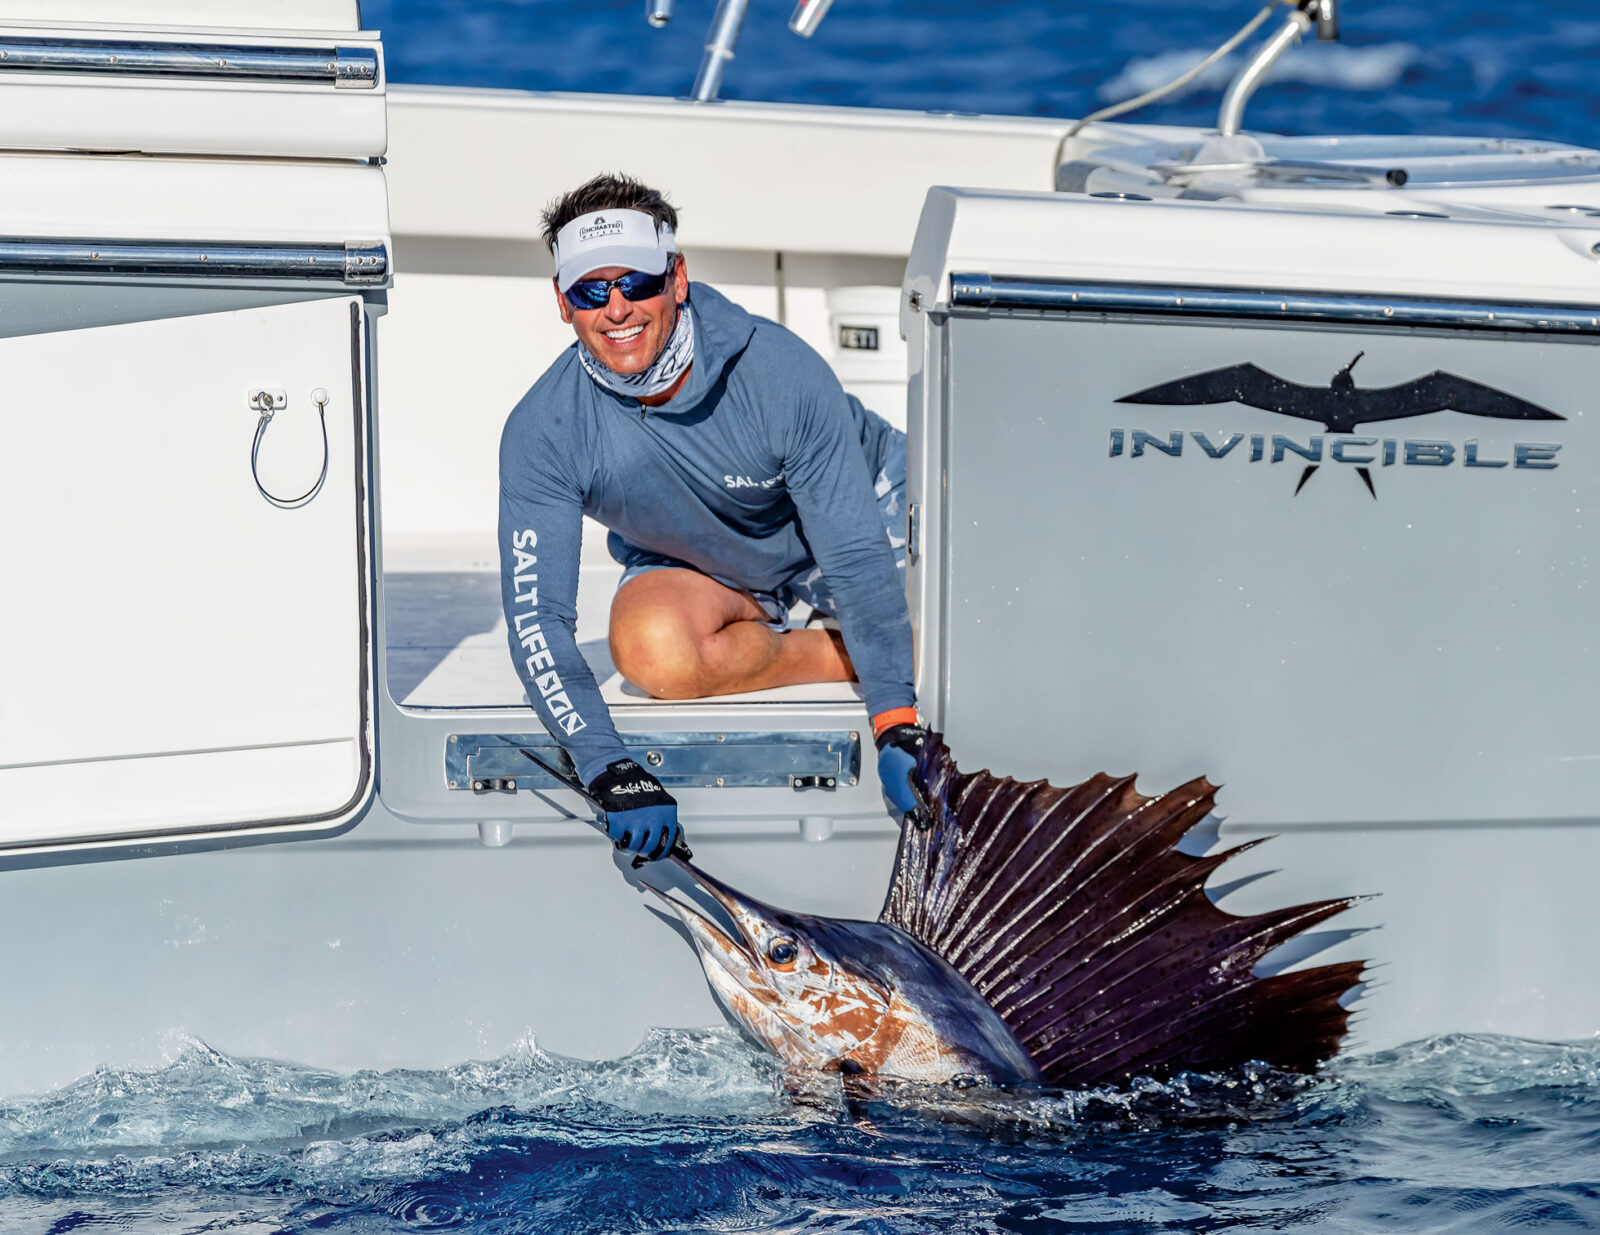 Image of fishermen with a sailfish on the back of an Invincible Power Boat